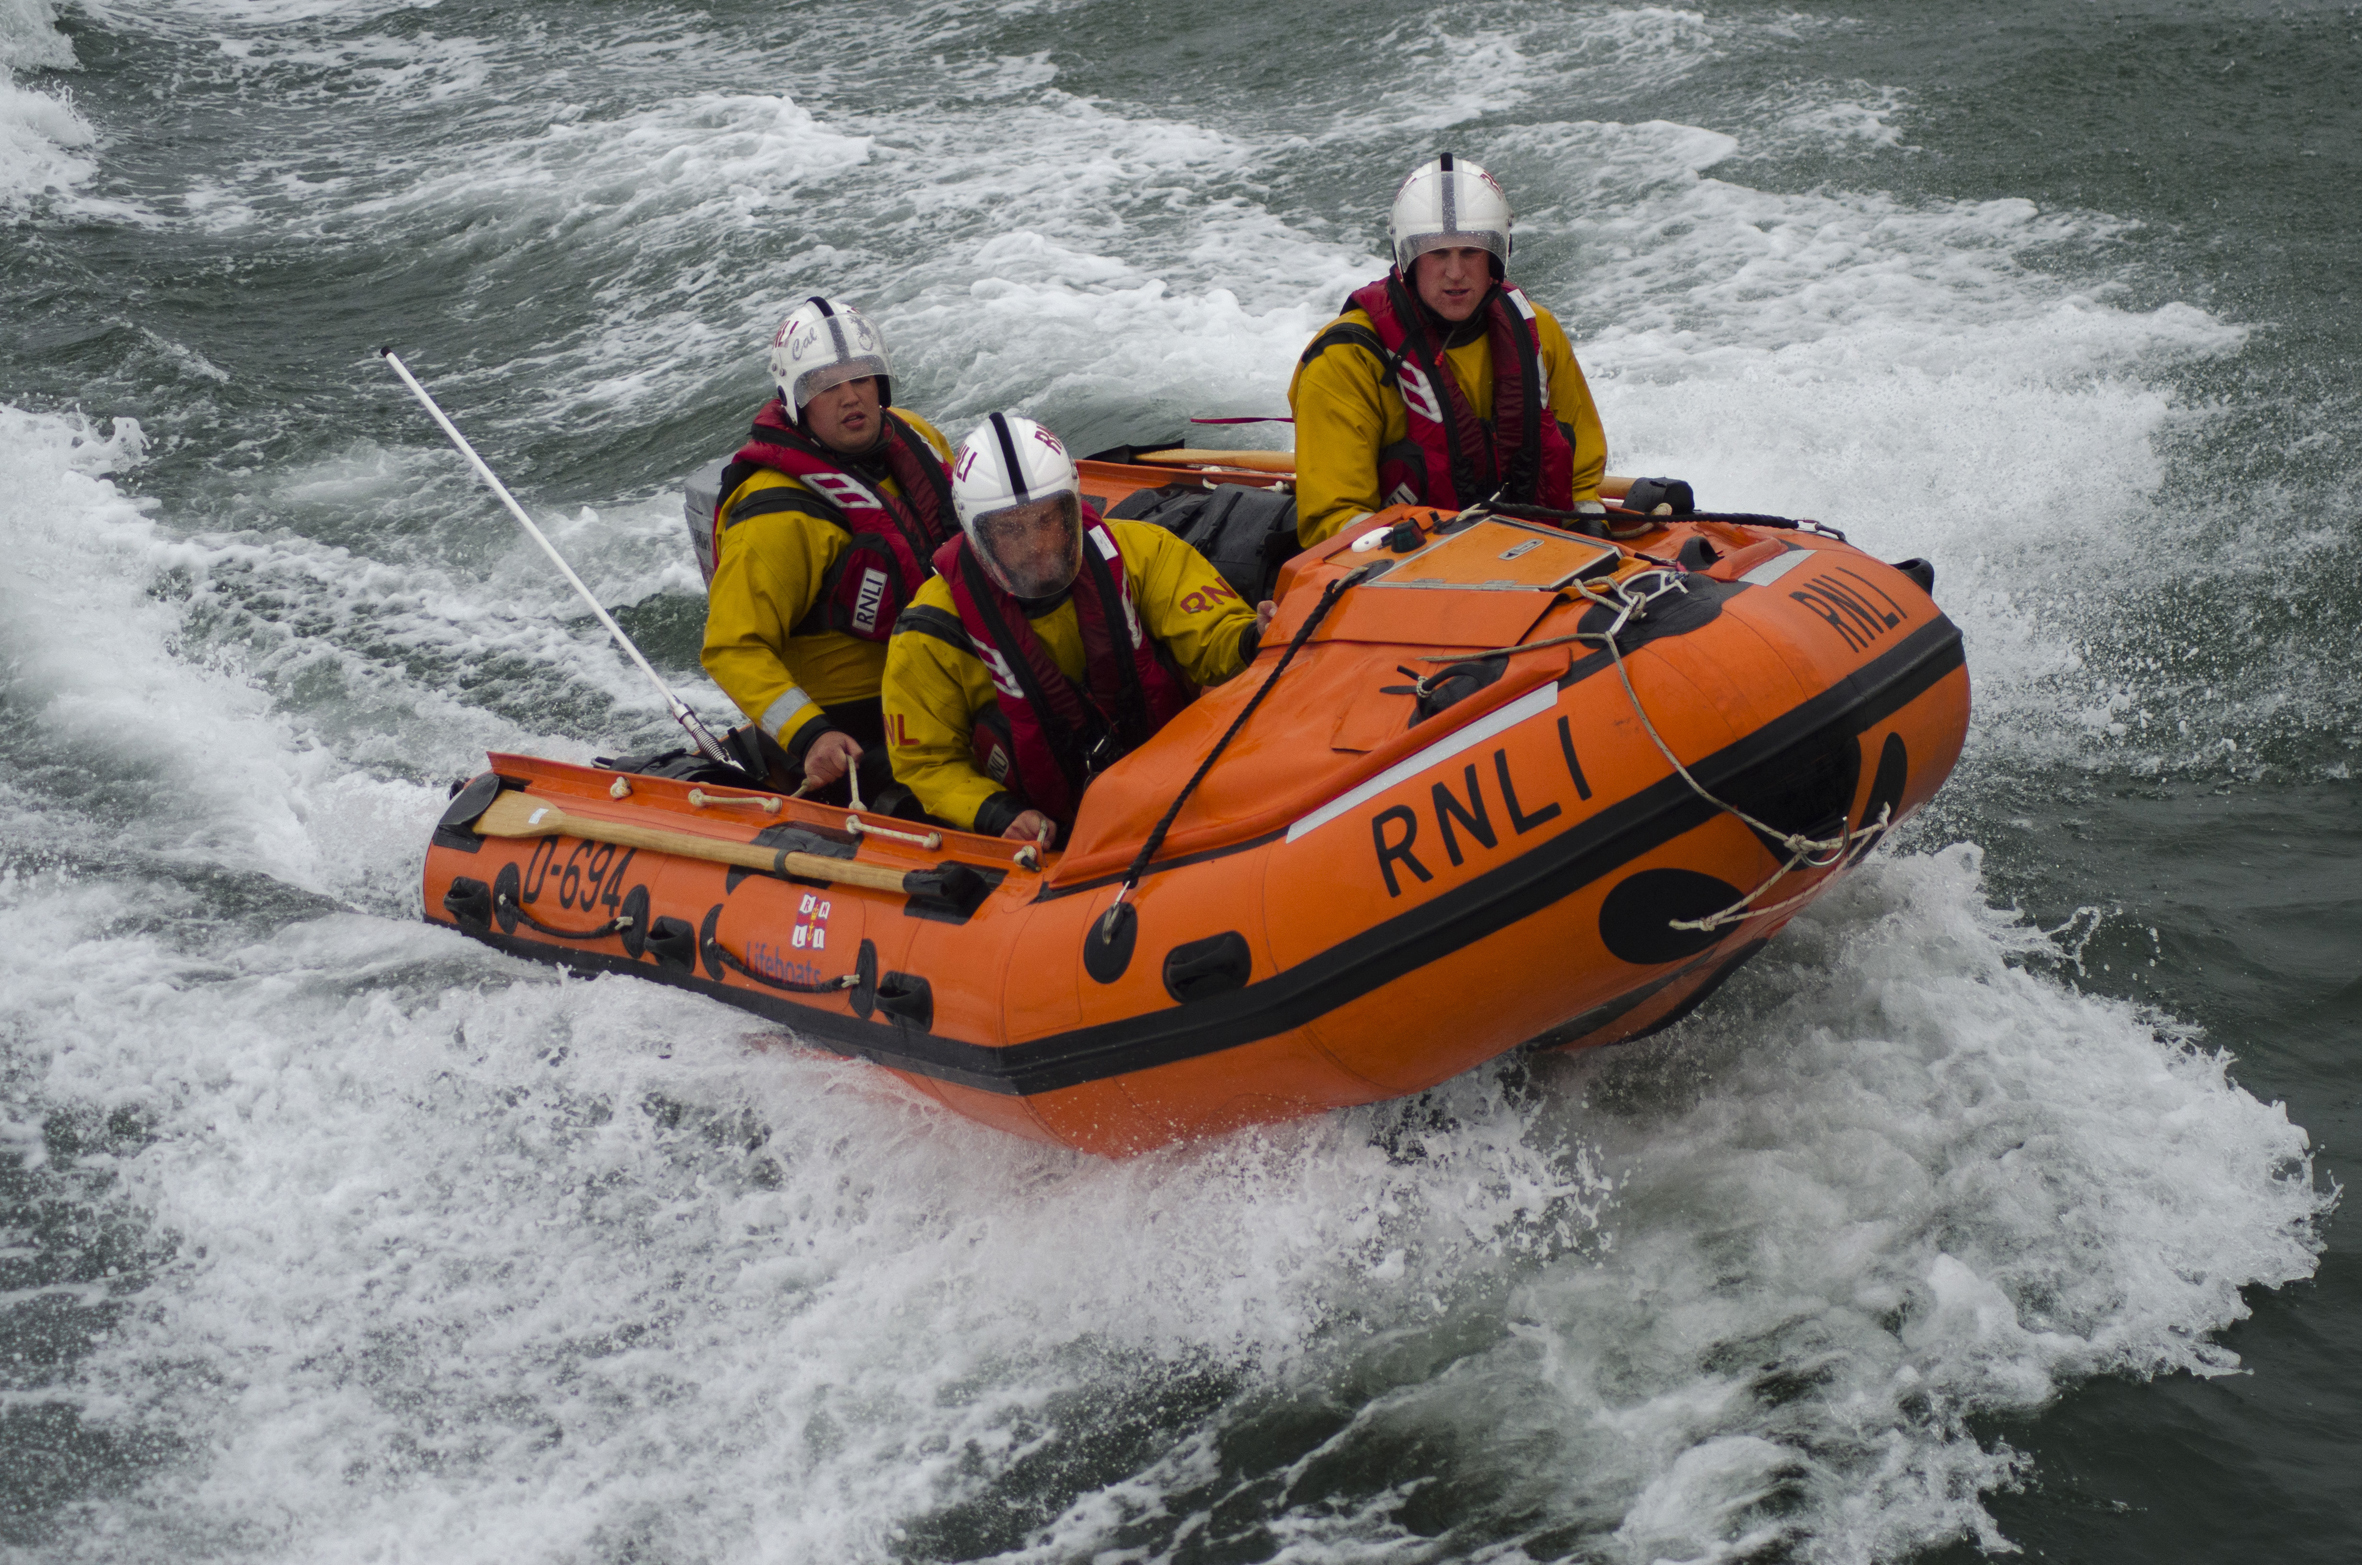 The Aberdeen RNLI team on the waves during a training exercise. Picture by Mark Gray.